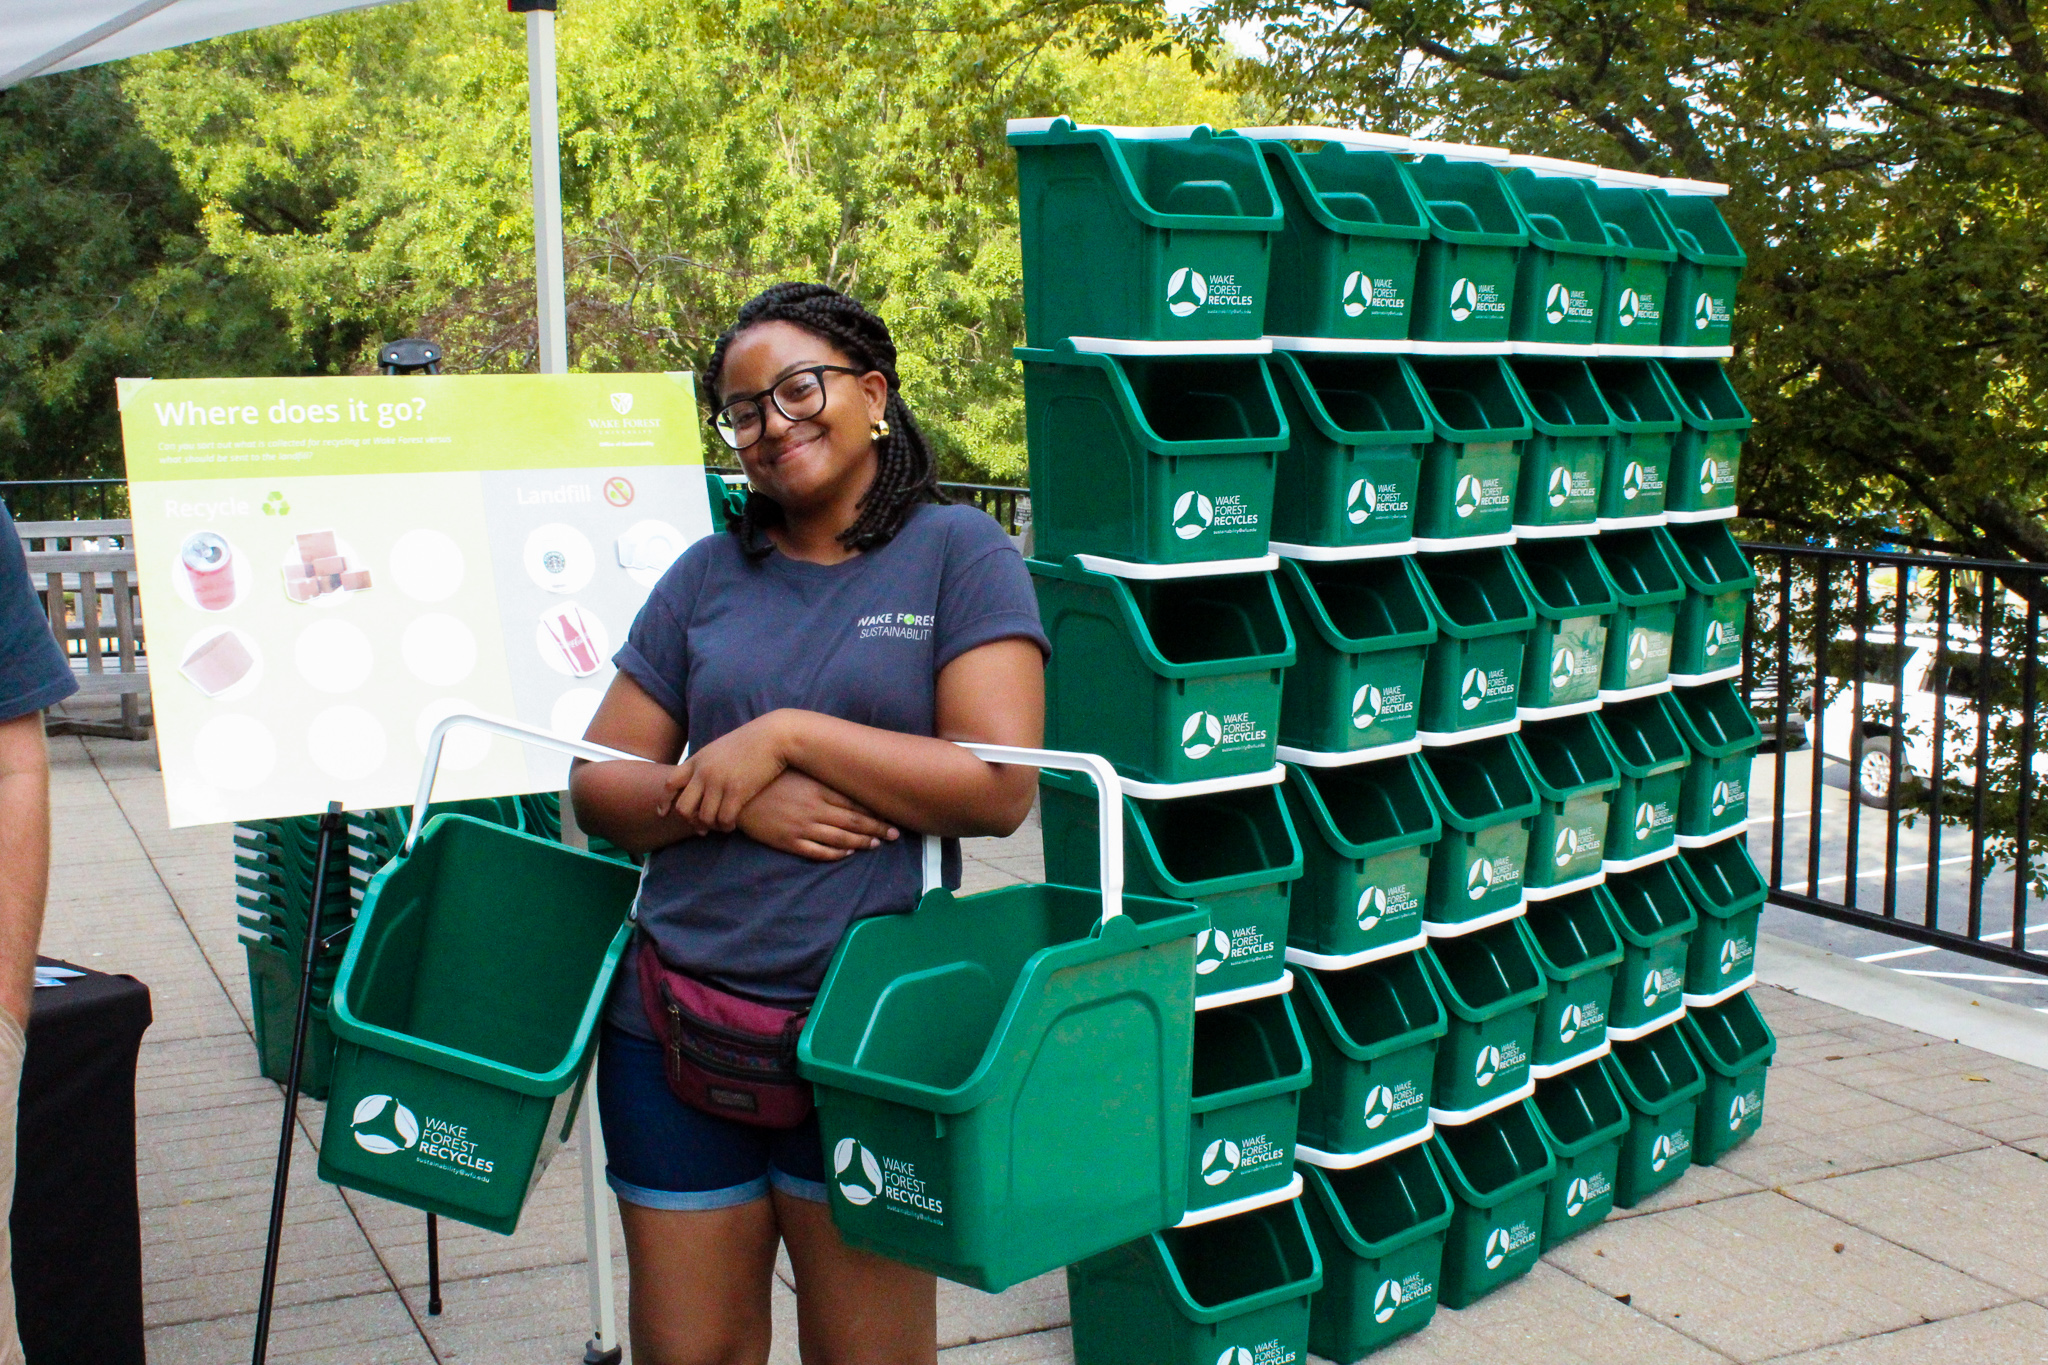 recycling bins and a woman smiling